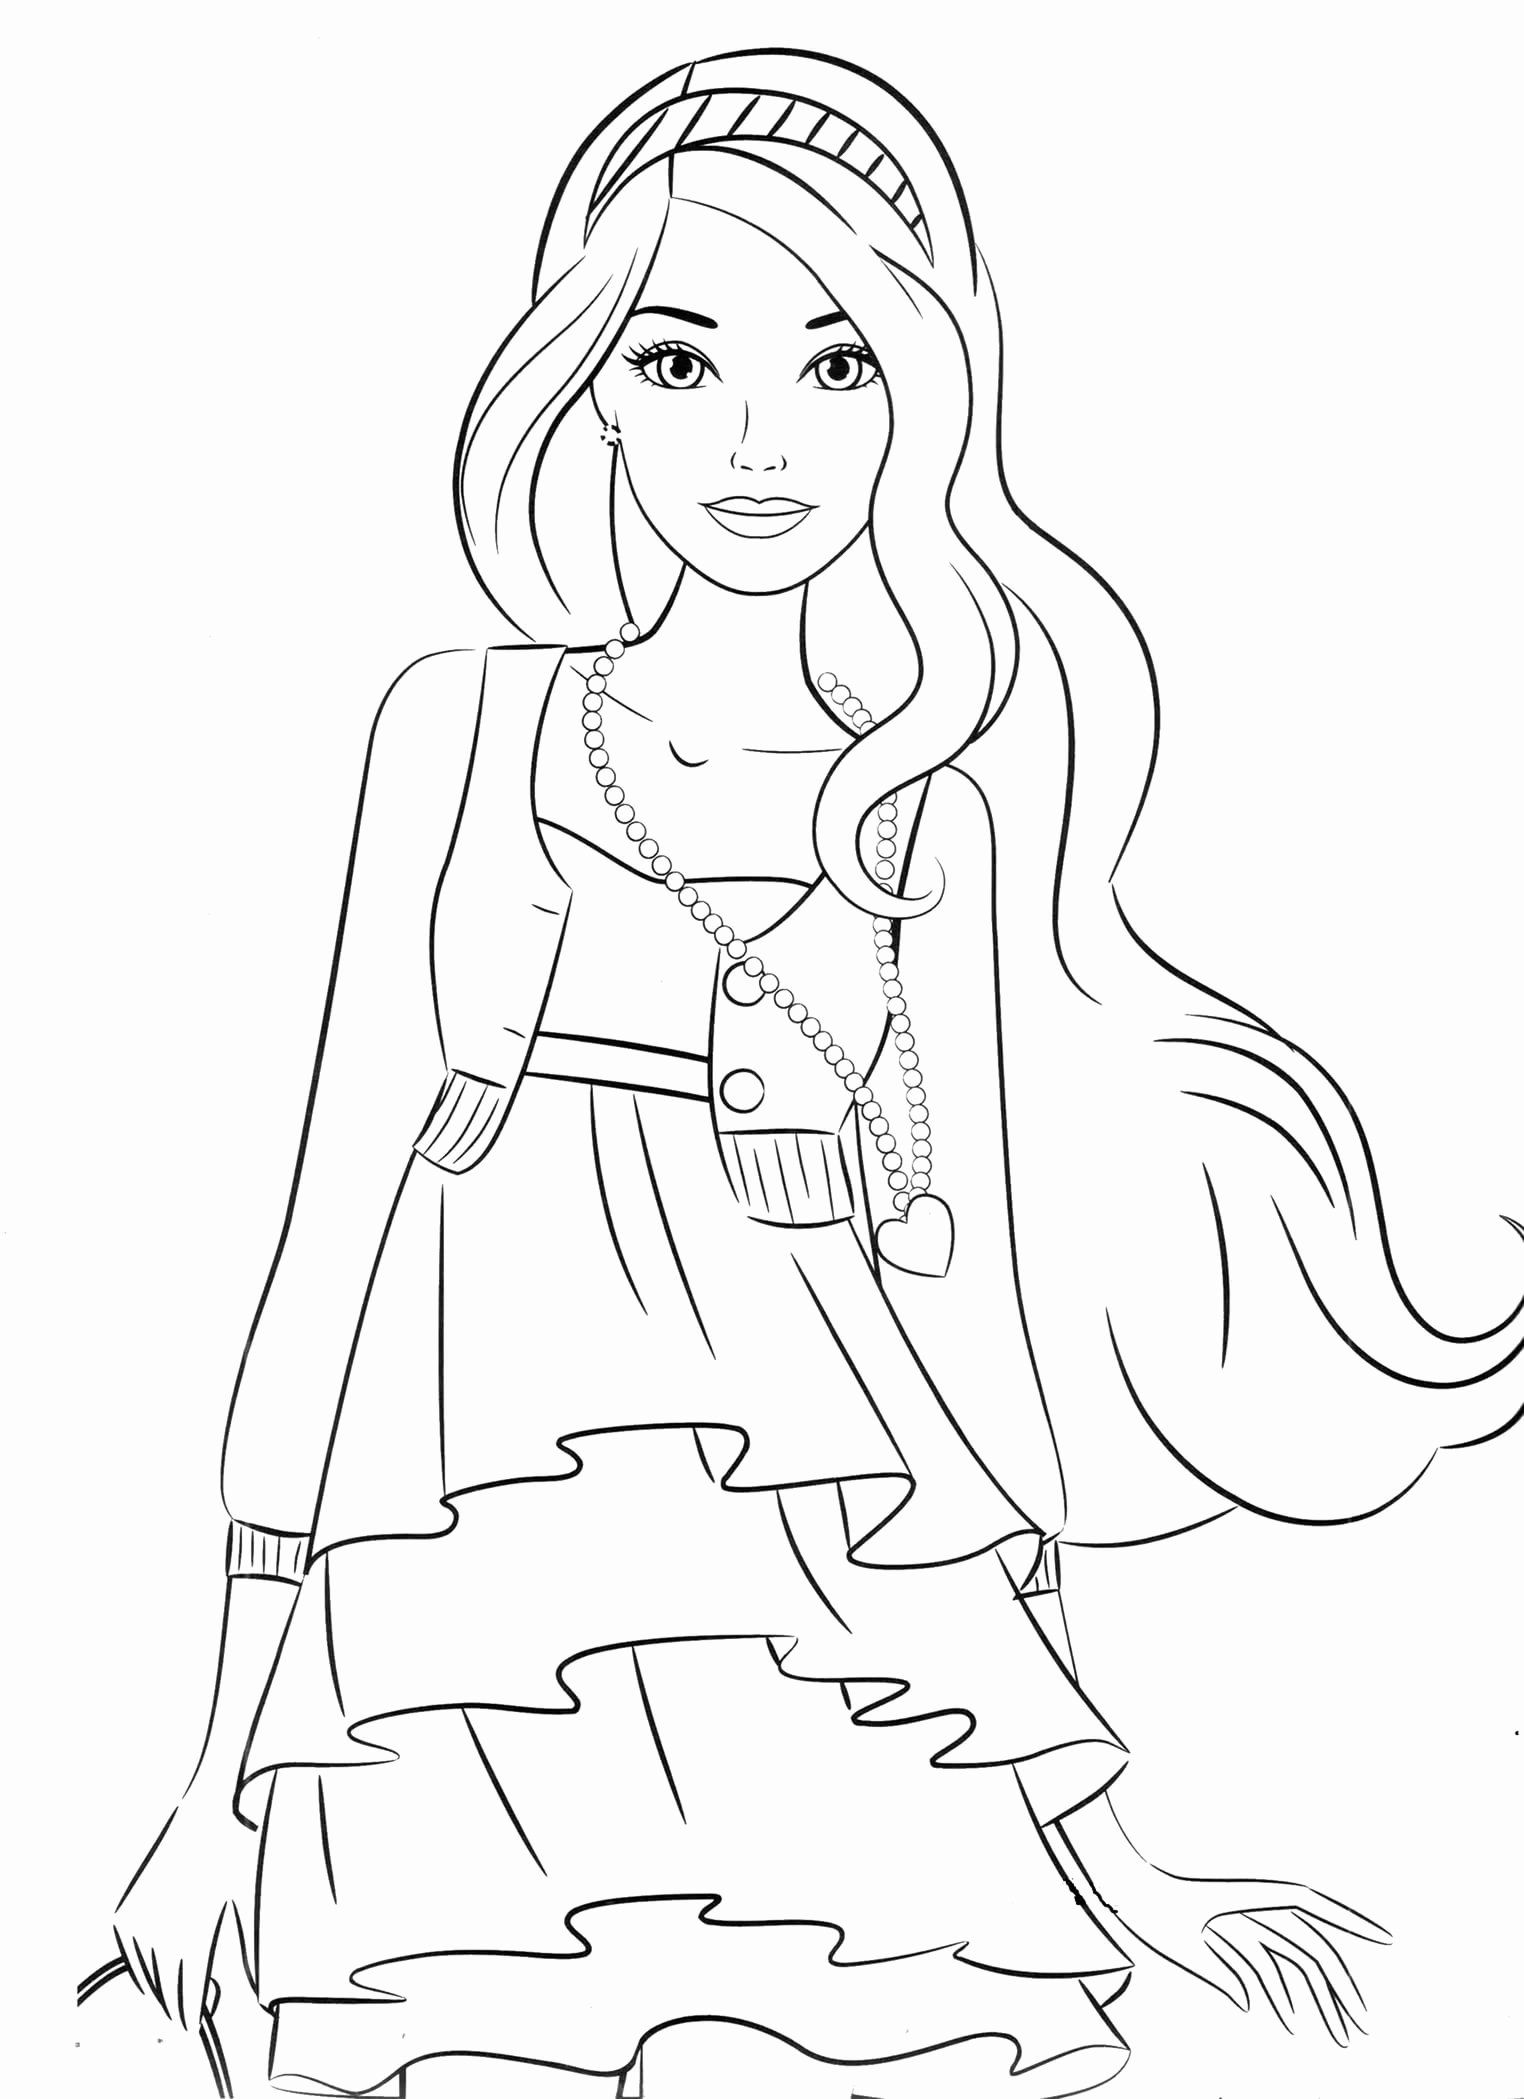 Cool Coloring Pages For 9 Year Olds Designs Collections